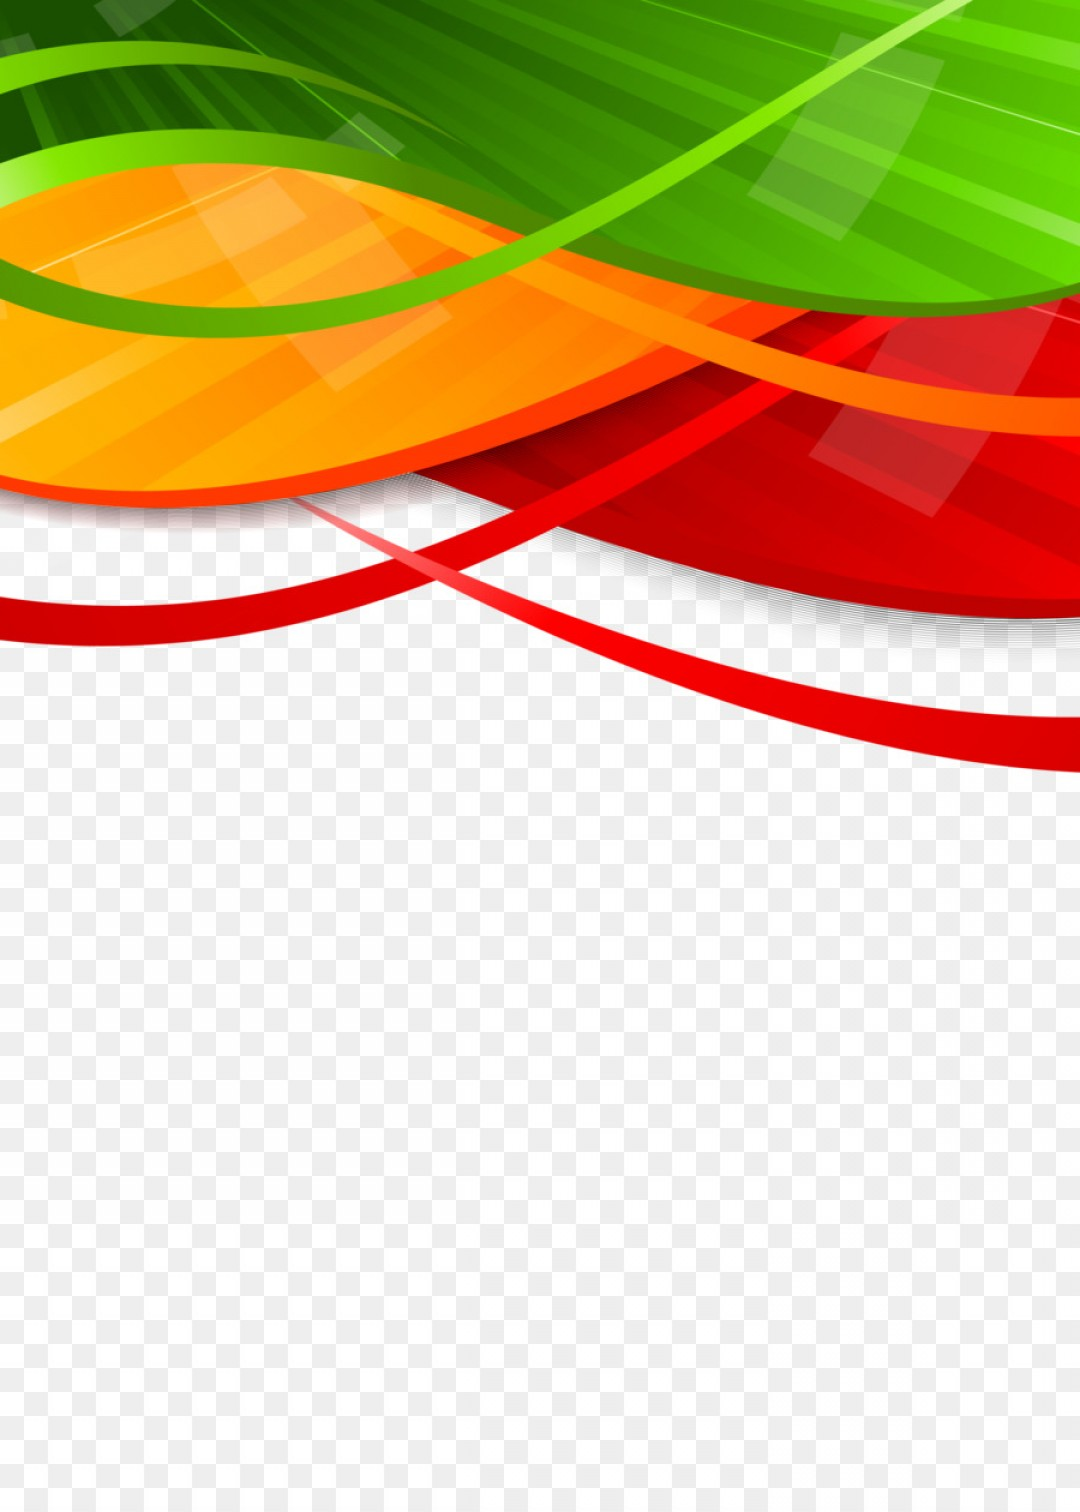 Png Graphic Design Vector Text Background Graphics.